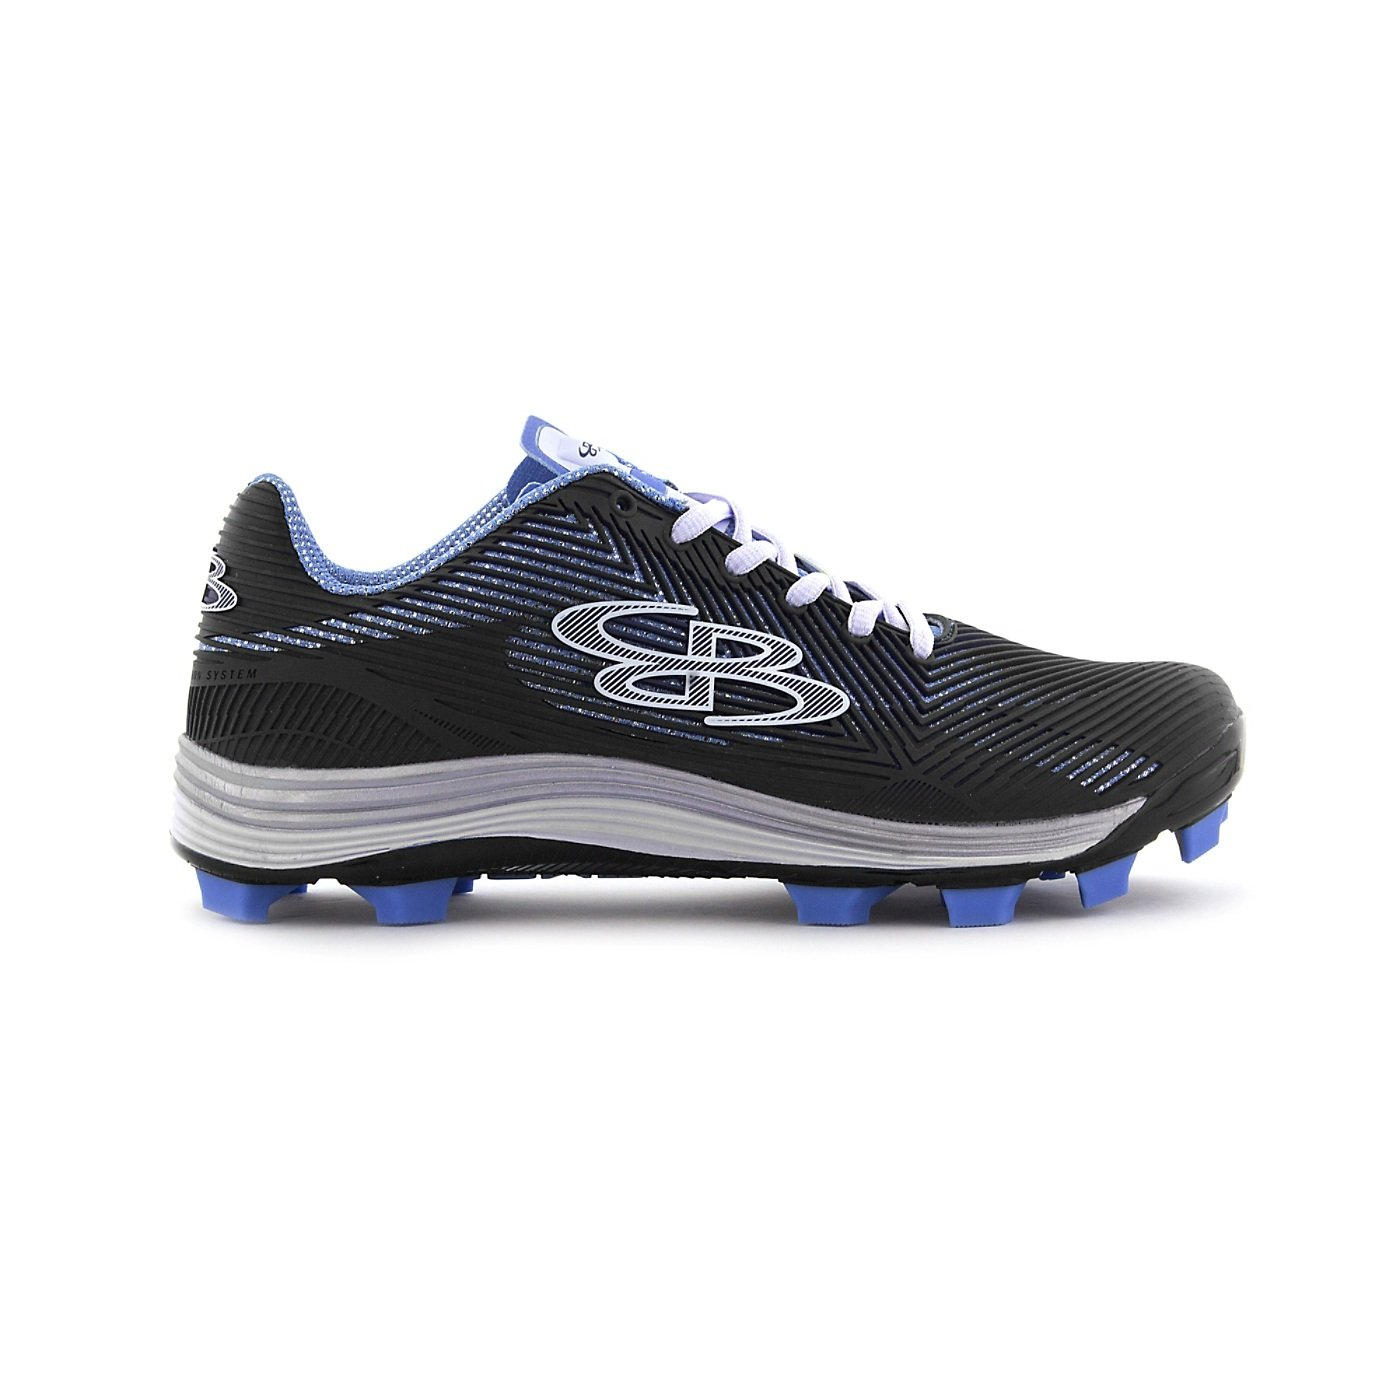 Boombah Women's Spotlight Molded Cleat Black/Columbia - Size 9.5 by Boombah